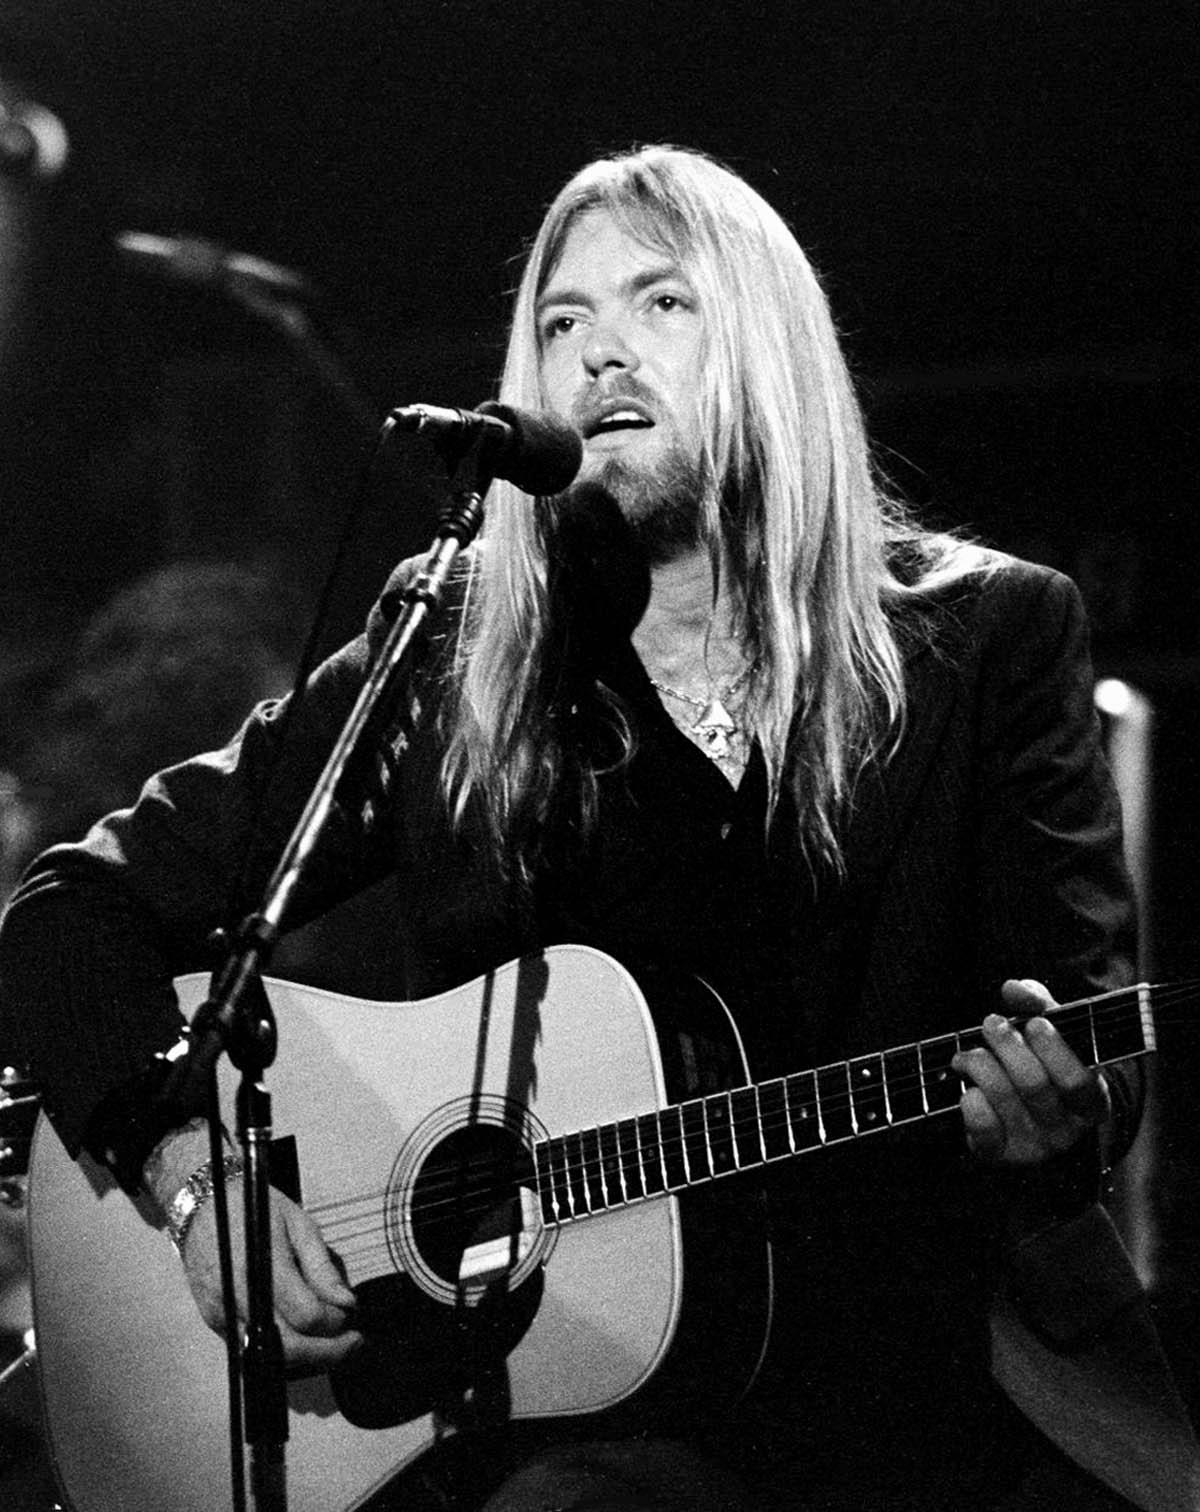 Blues rocker Gregg Allman dies at 69